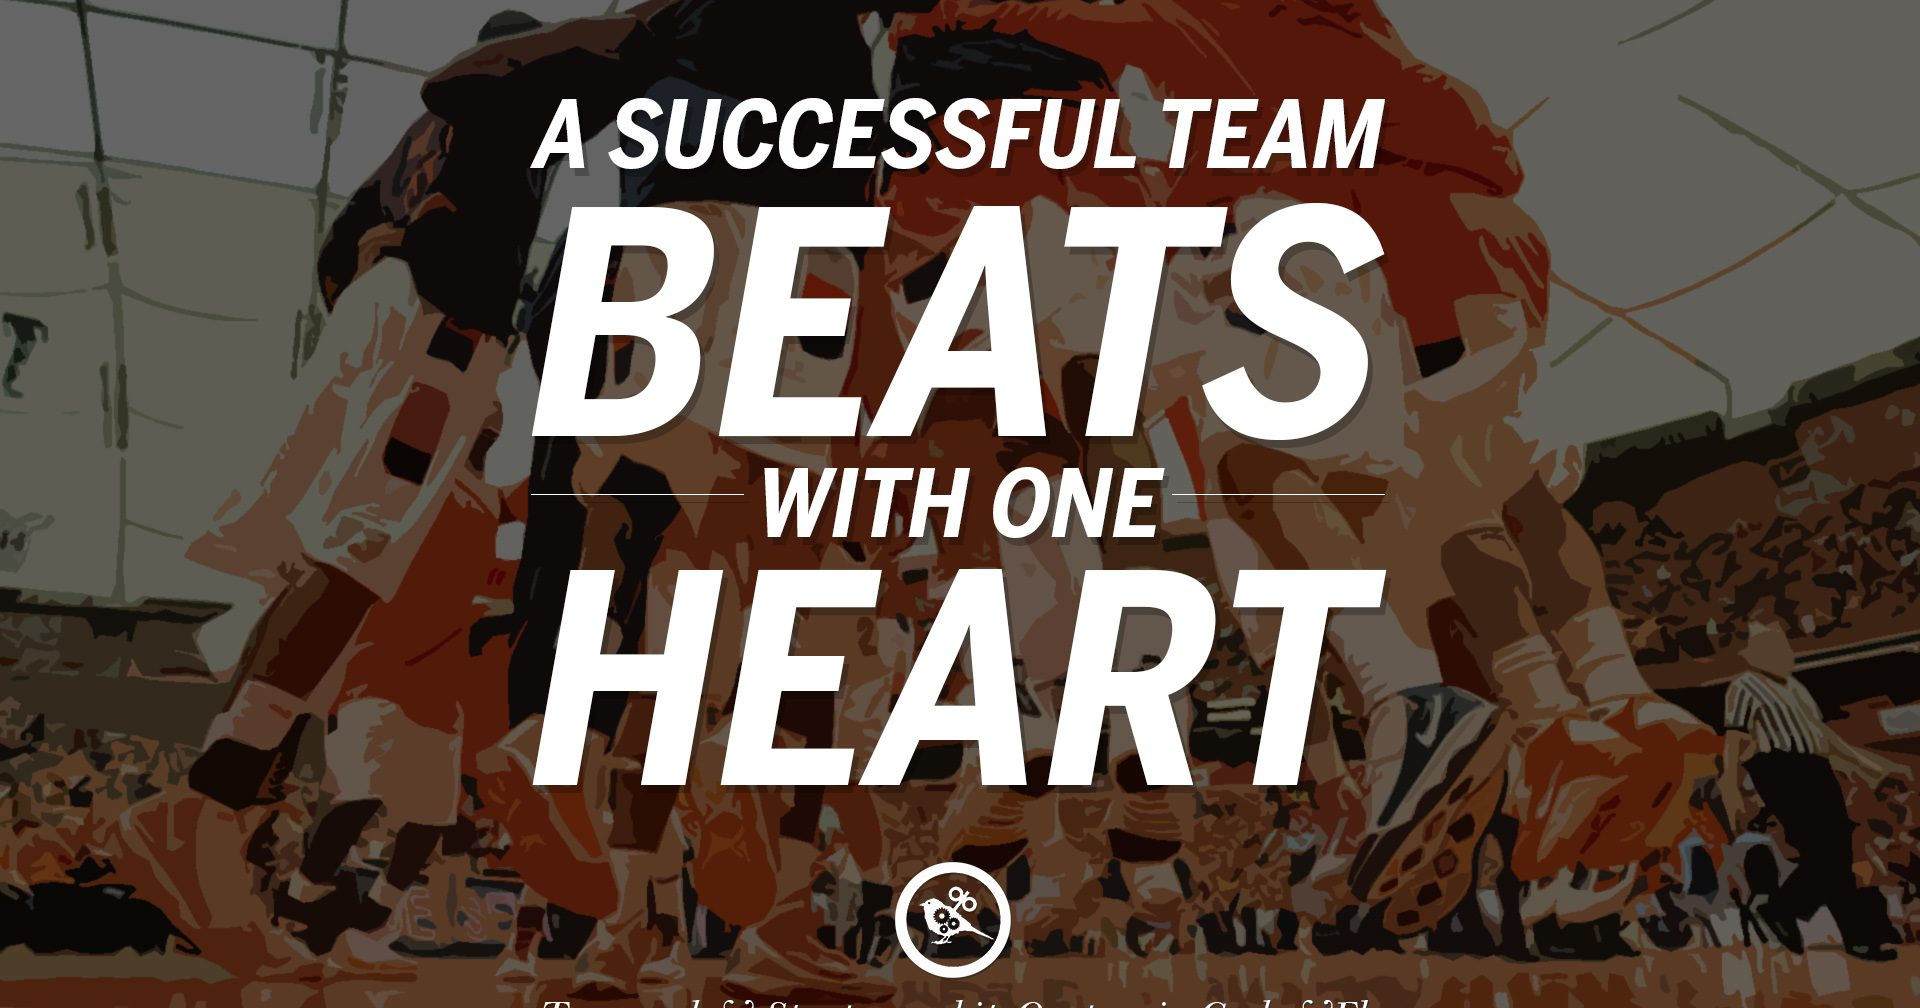 sports-teamwork-sportsmanship-quotes-40